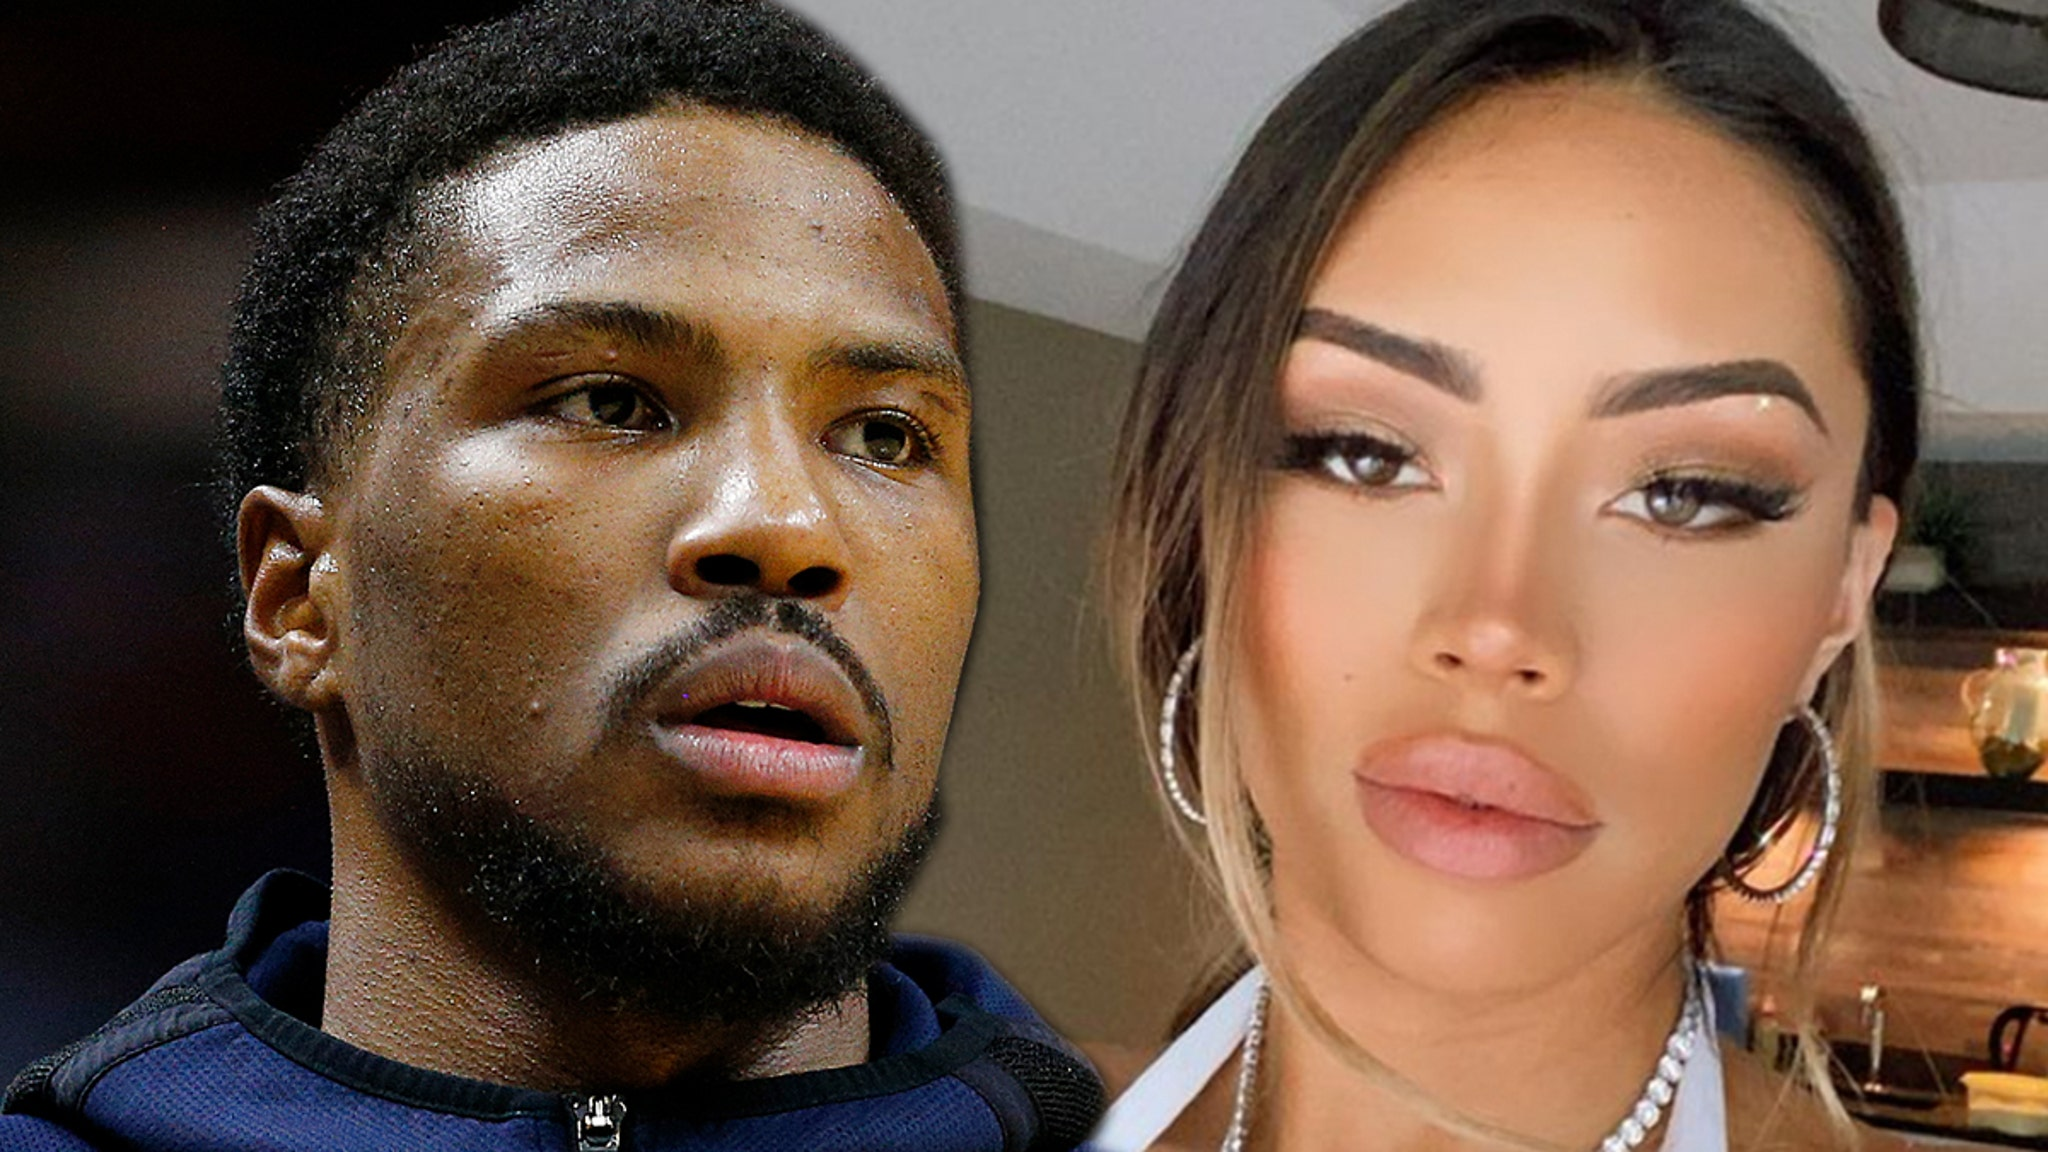 NBA's Malik Beasley Apologizes to Wife and Son for Fling with Larsa Pippen